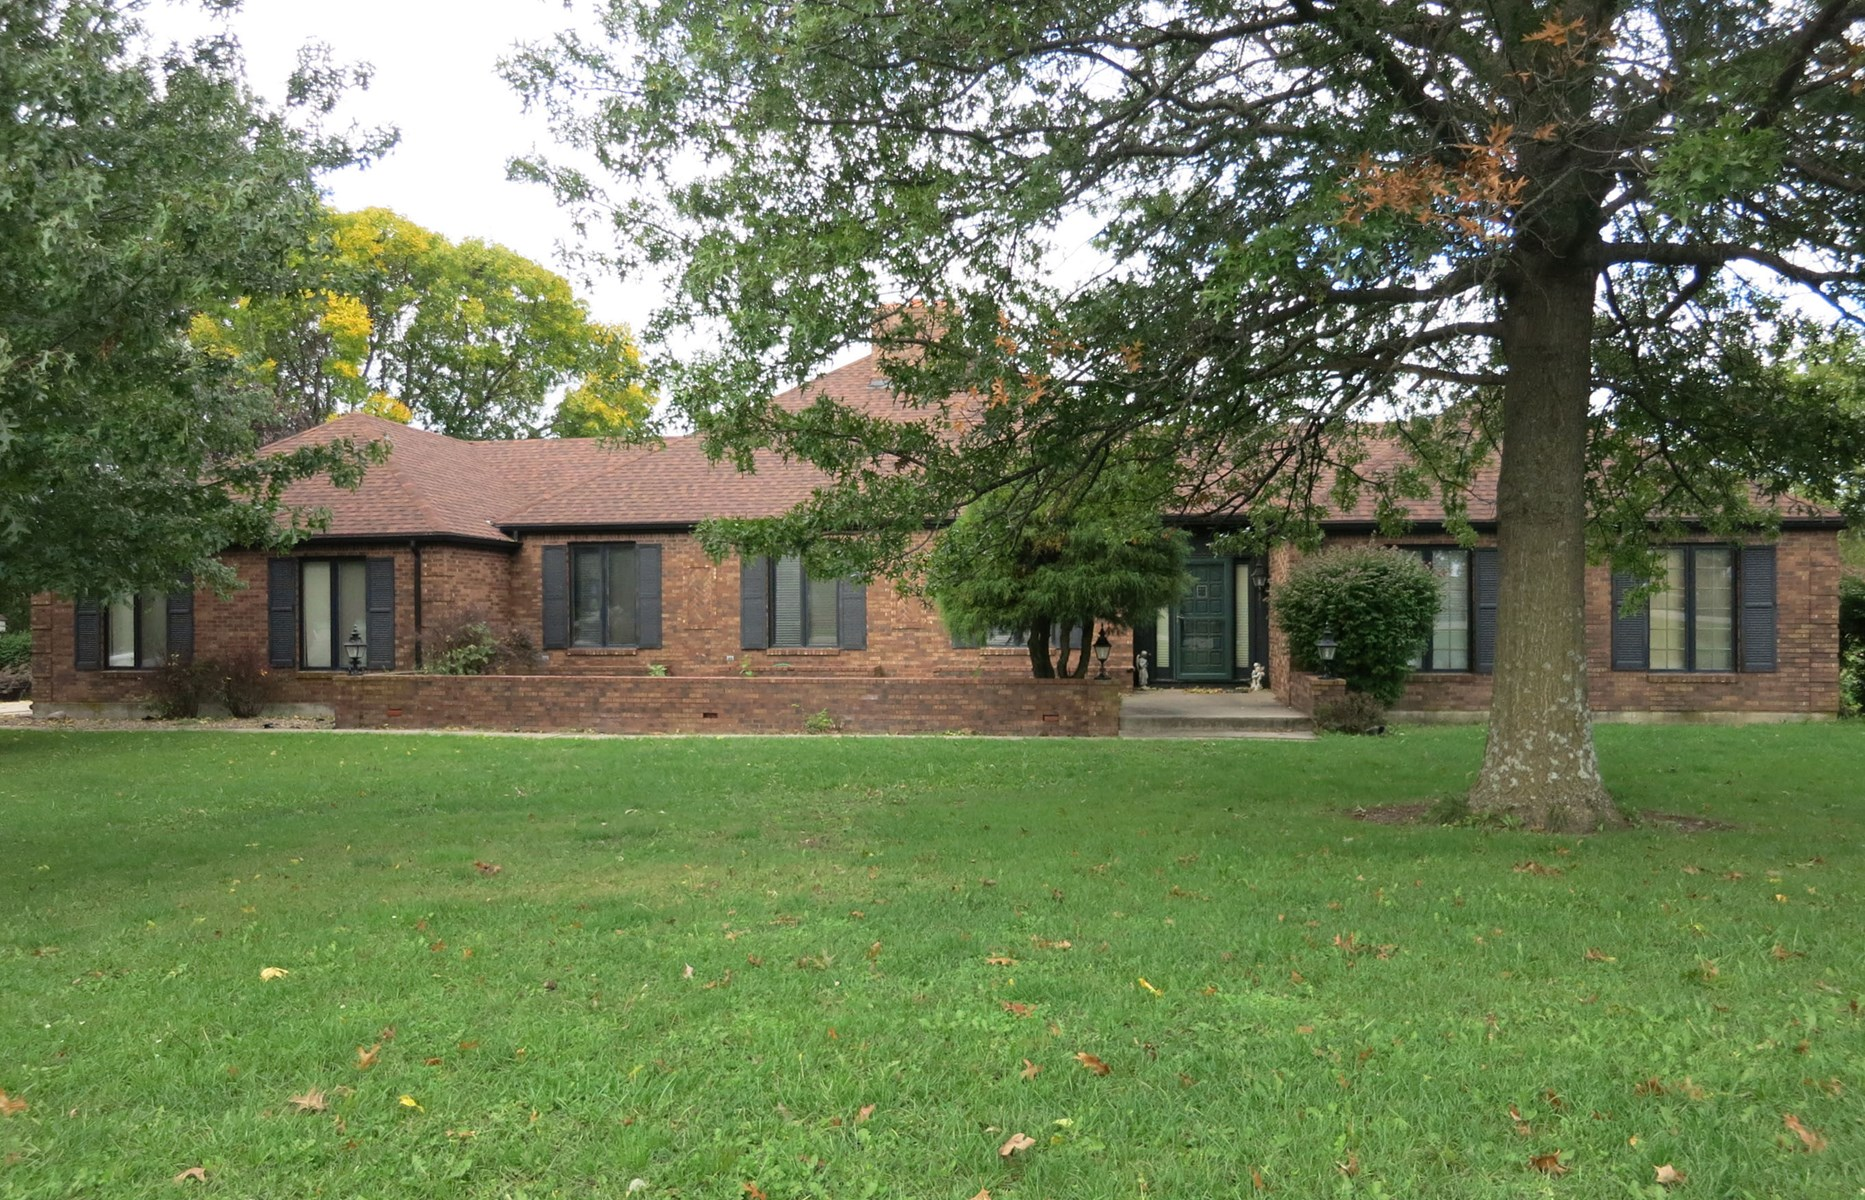 Brick Home with In-Ground Pool on Golf Course